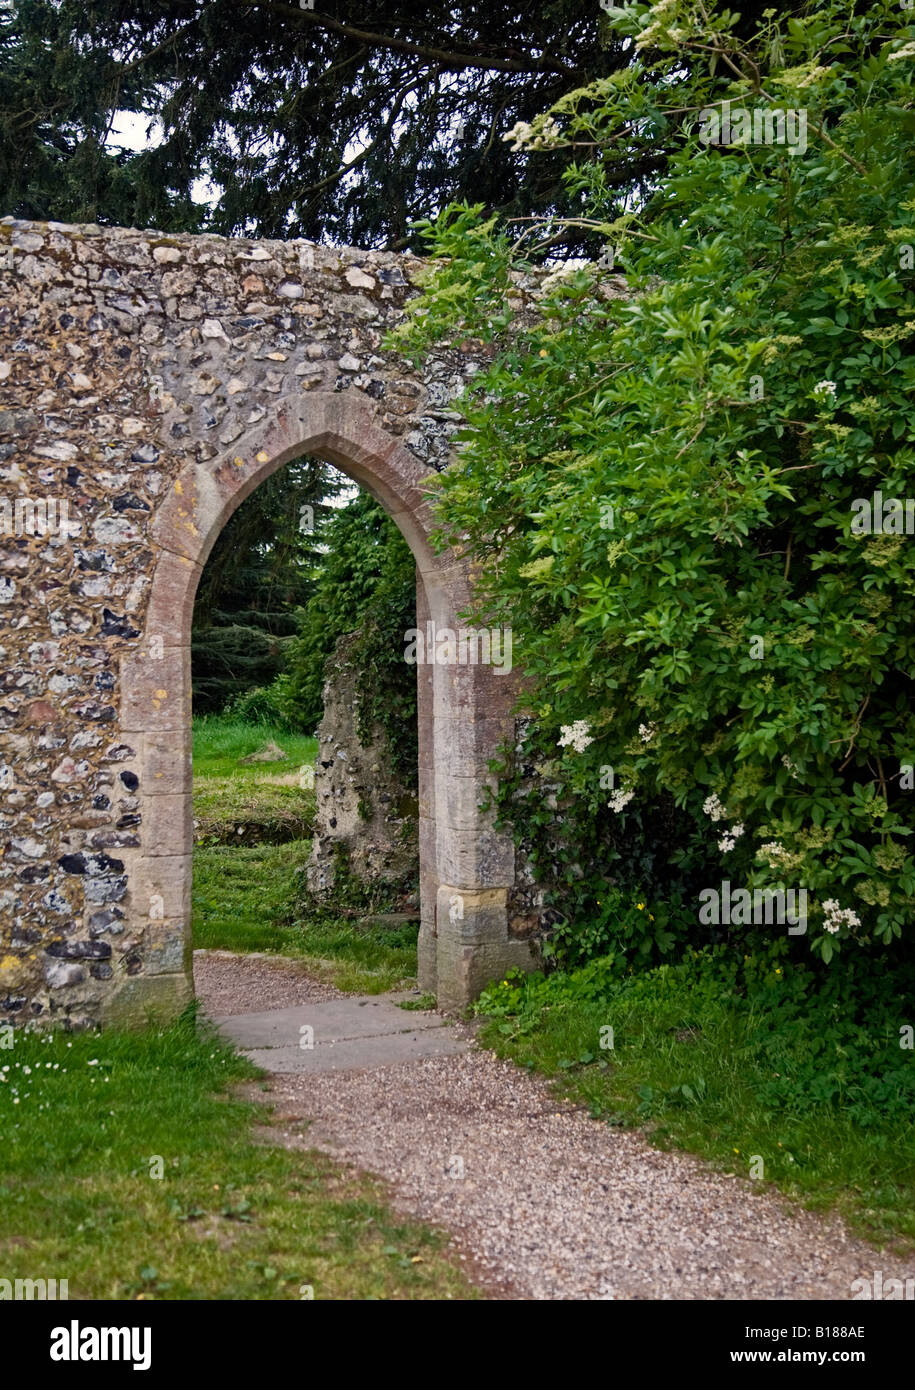 Arched Gateway at Boxgrove Priory, West Sussex, England - Stock Image